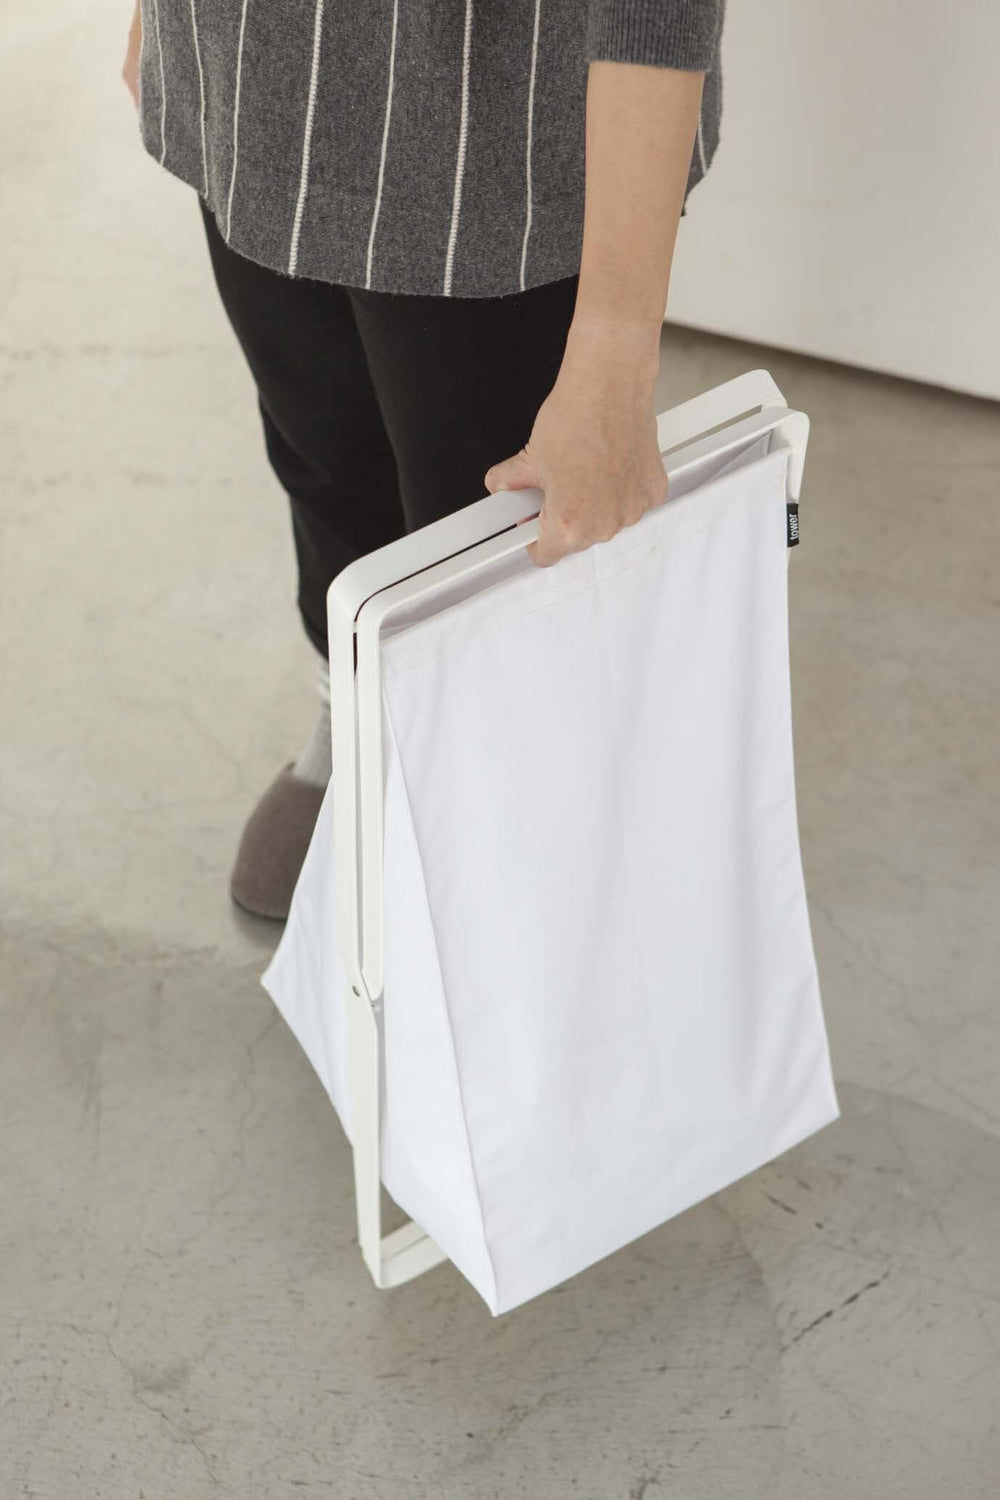 Someone is carrying Yamazaki's white folded-up laundry hamper.